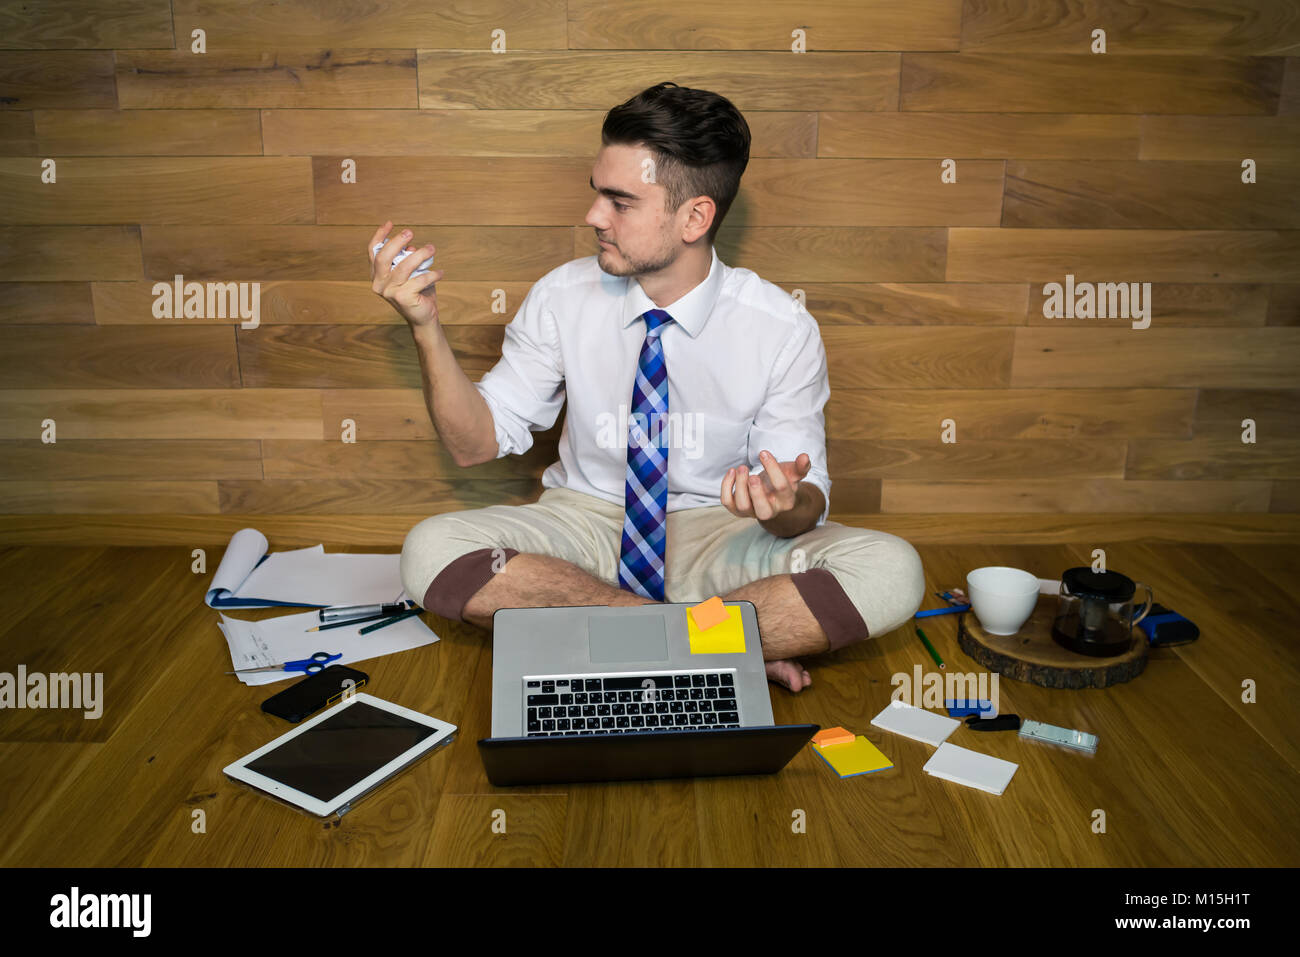 A young man in funny clothes working with project and preparing to throw out sheet with bad ideas. A barefoot businessman - Stock Image